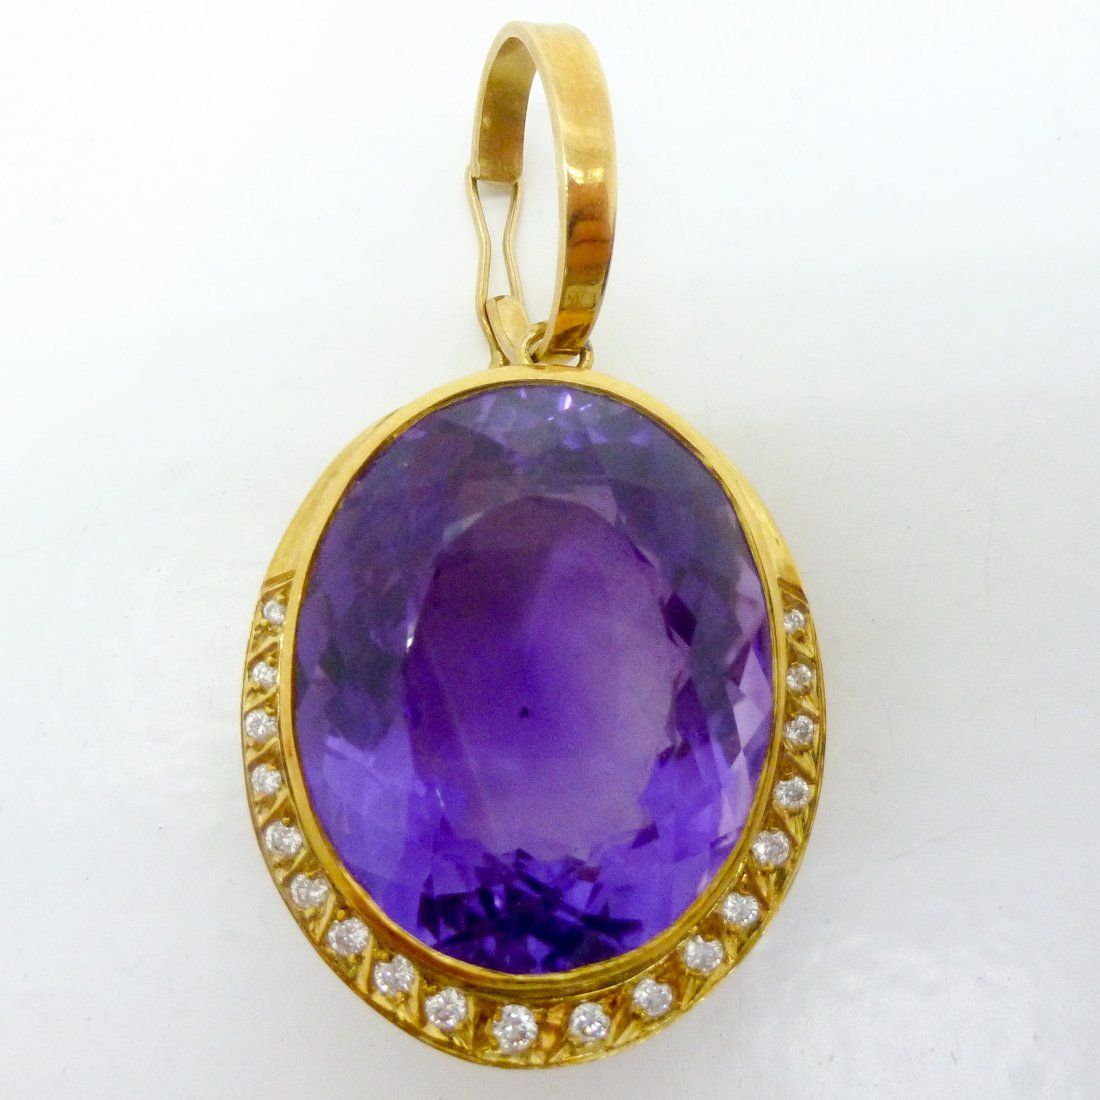 A Very Large Fine 18KG Amethyst and Diamond Ladies